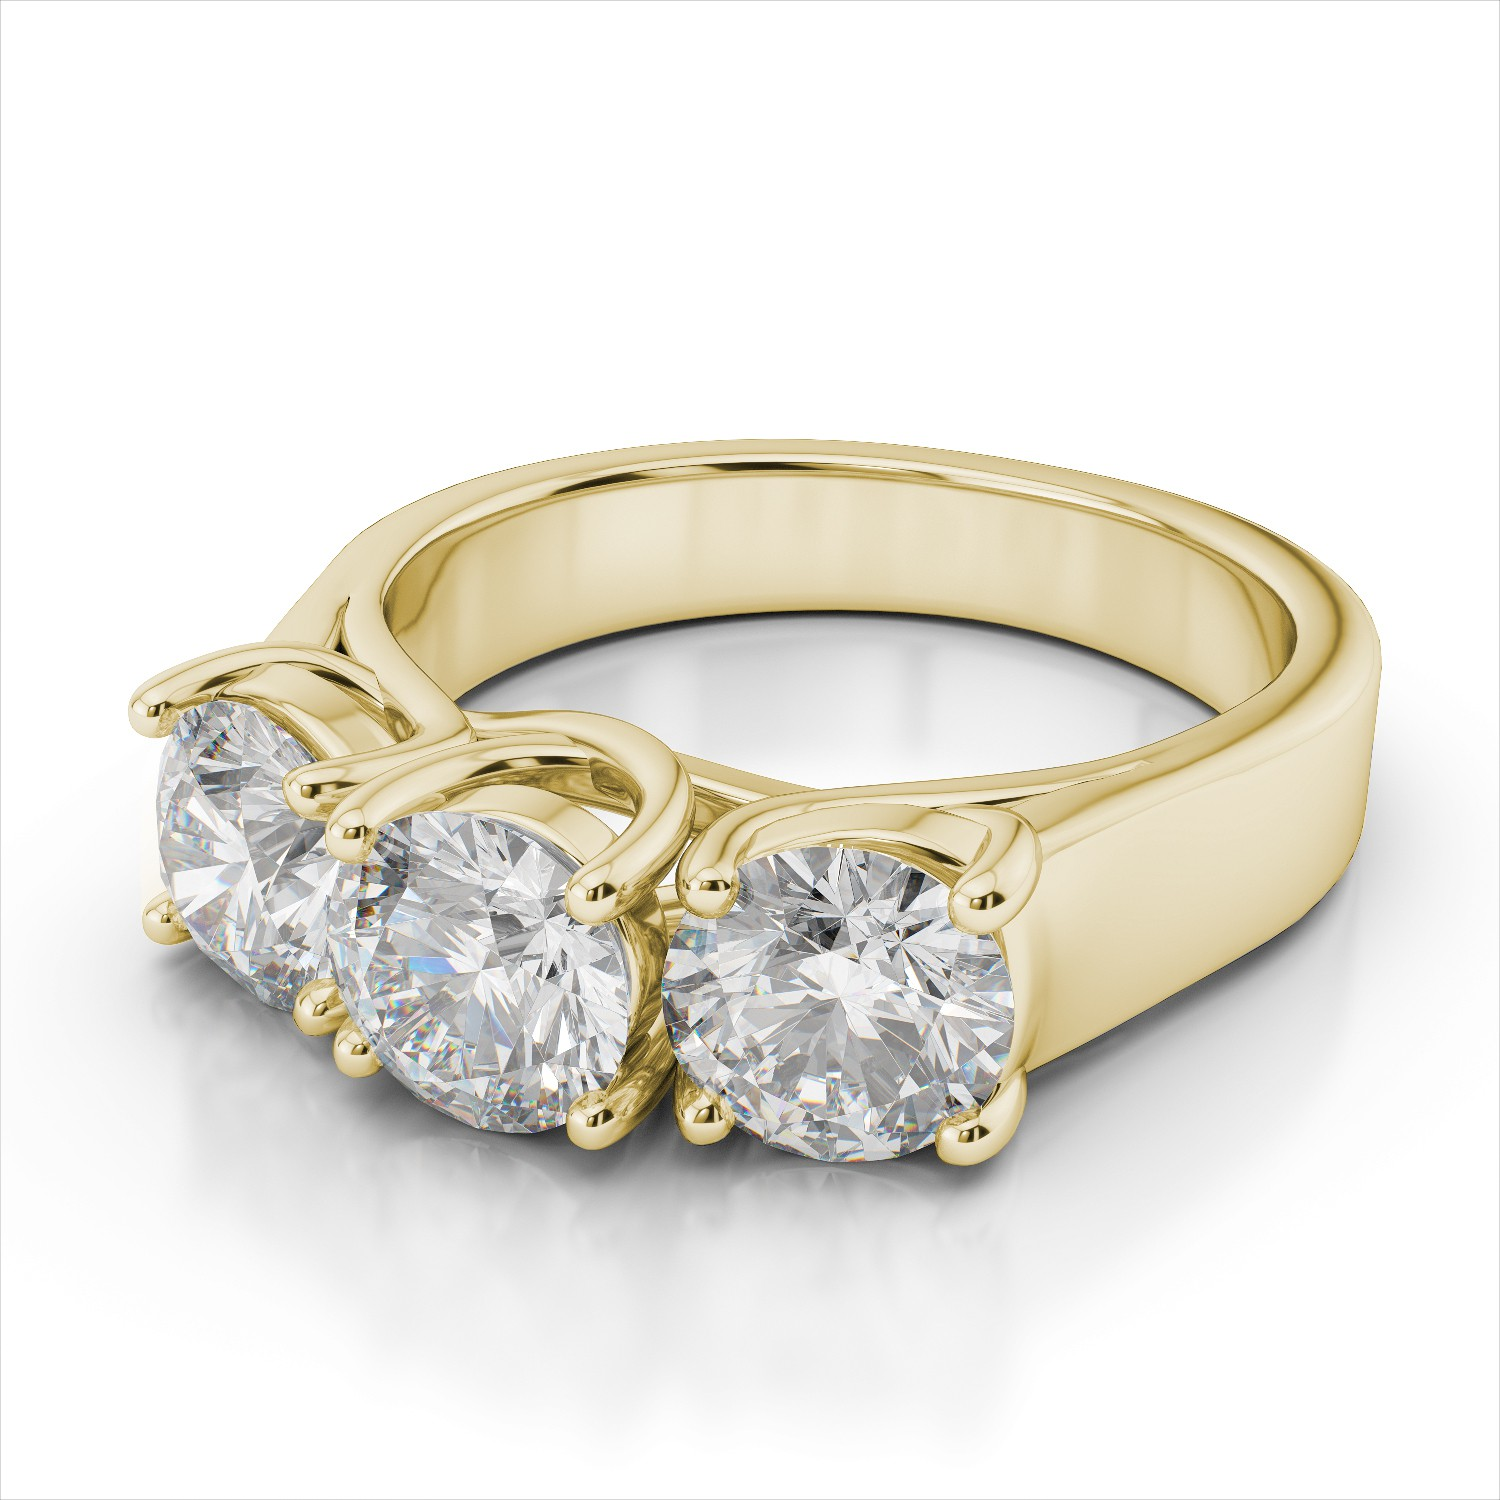 diamond white ctw rings ring samuels jewellery fashion pave jewelers gold